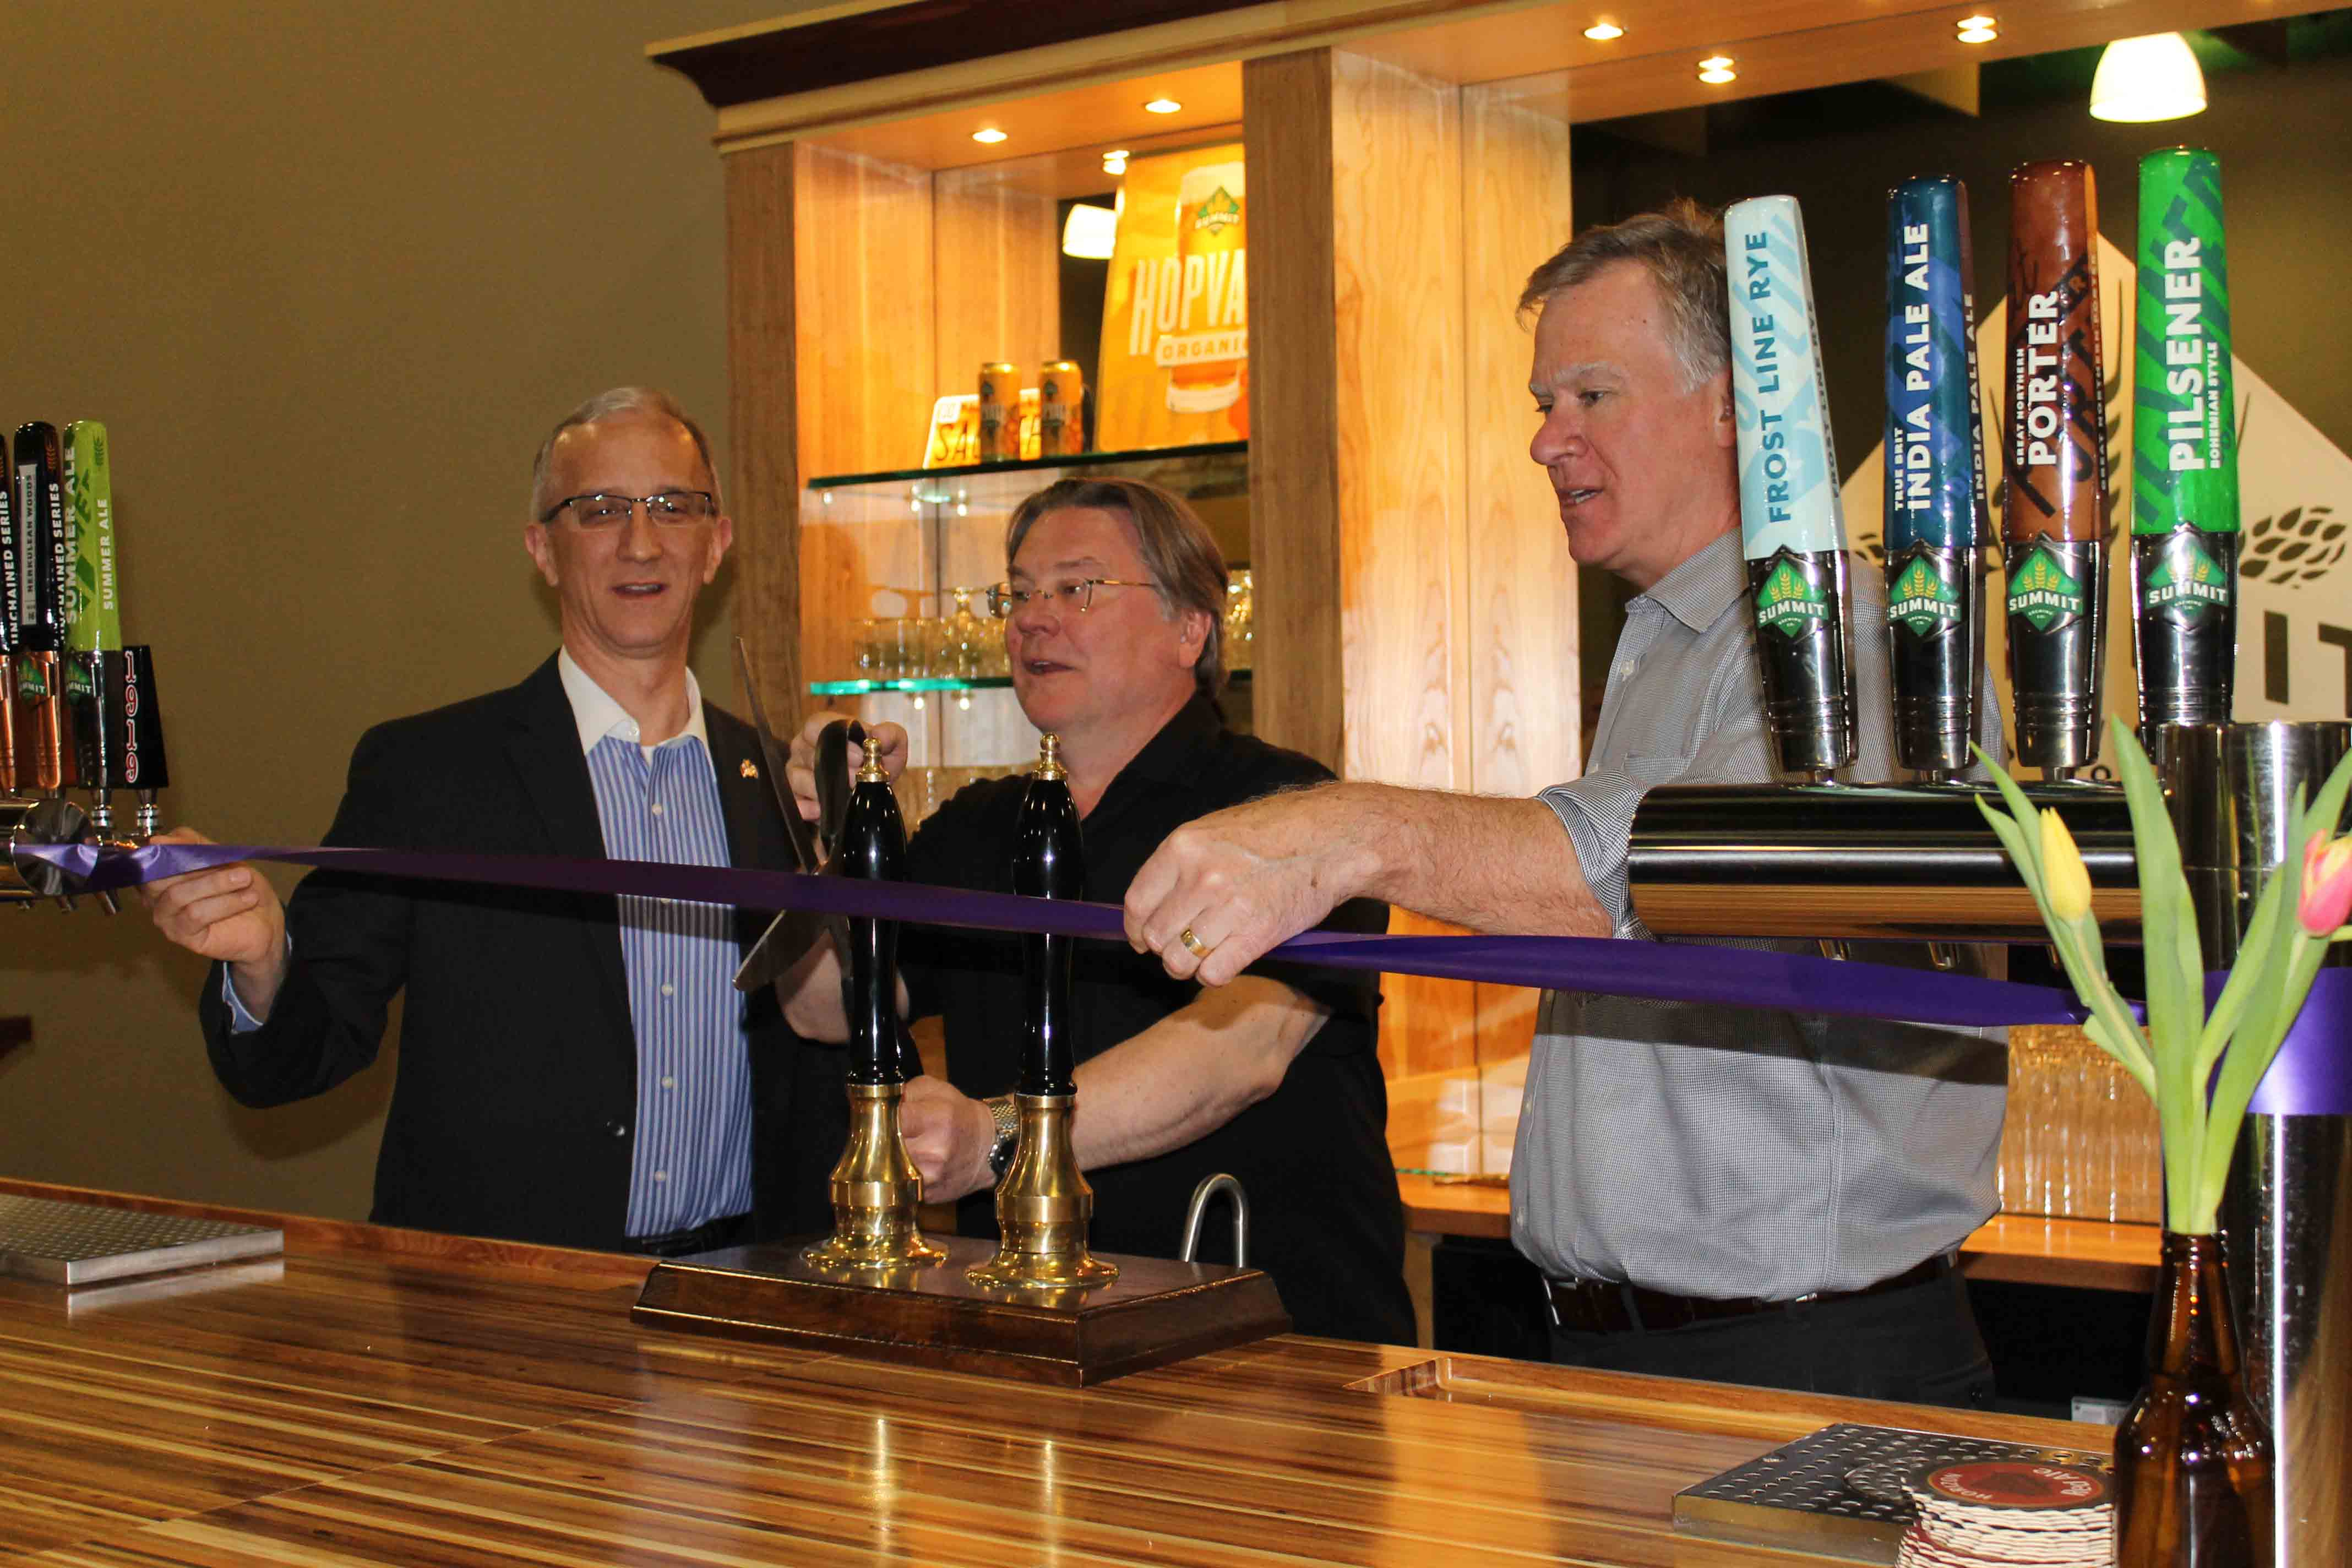 St. Paul Chamber of Commerce President Matt Kramer, Summit Brewing Company Founder and Owner Mark Stutrud and St. Paul Mayor Chris Coleman cut the ribbon on Summit's expansion facility.